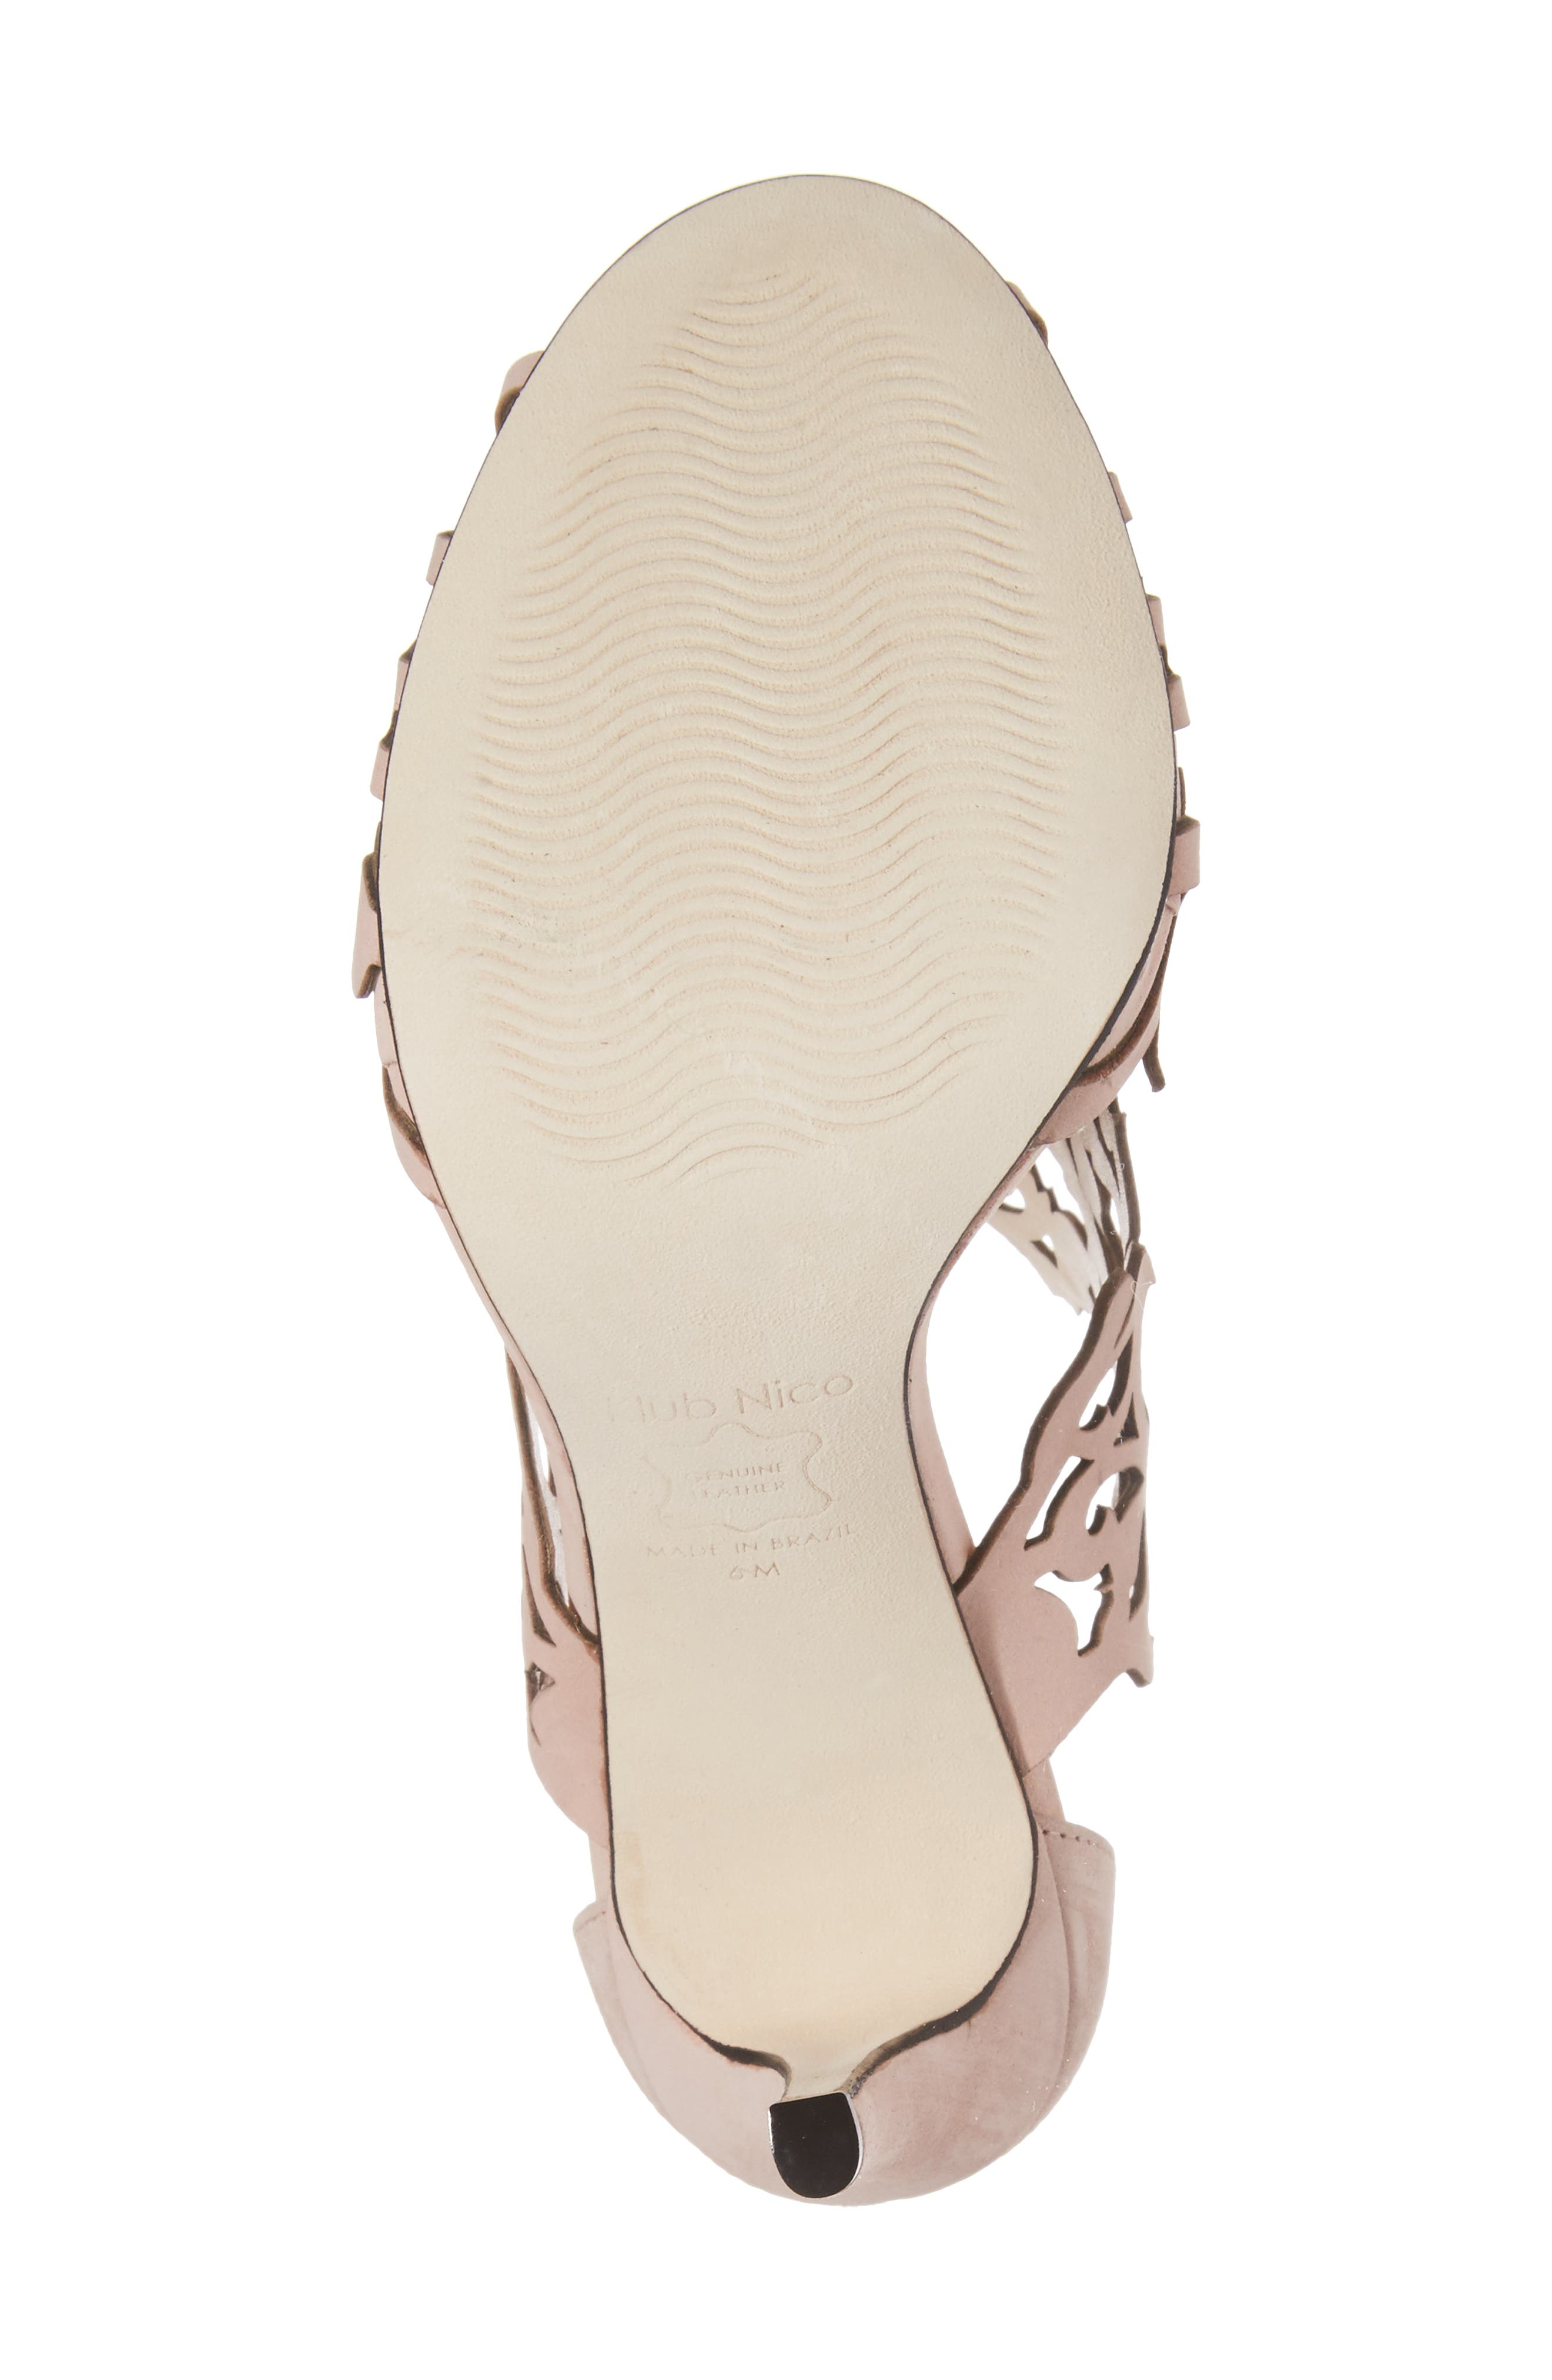 Marcela Laser Cutout Sandal,                             Alternate thumbnail 6, color,                             Blush Nubuck Leather